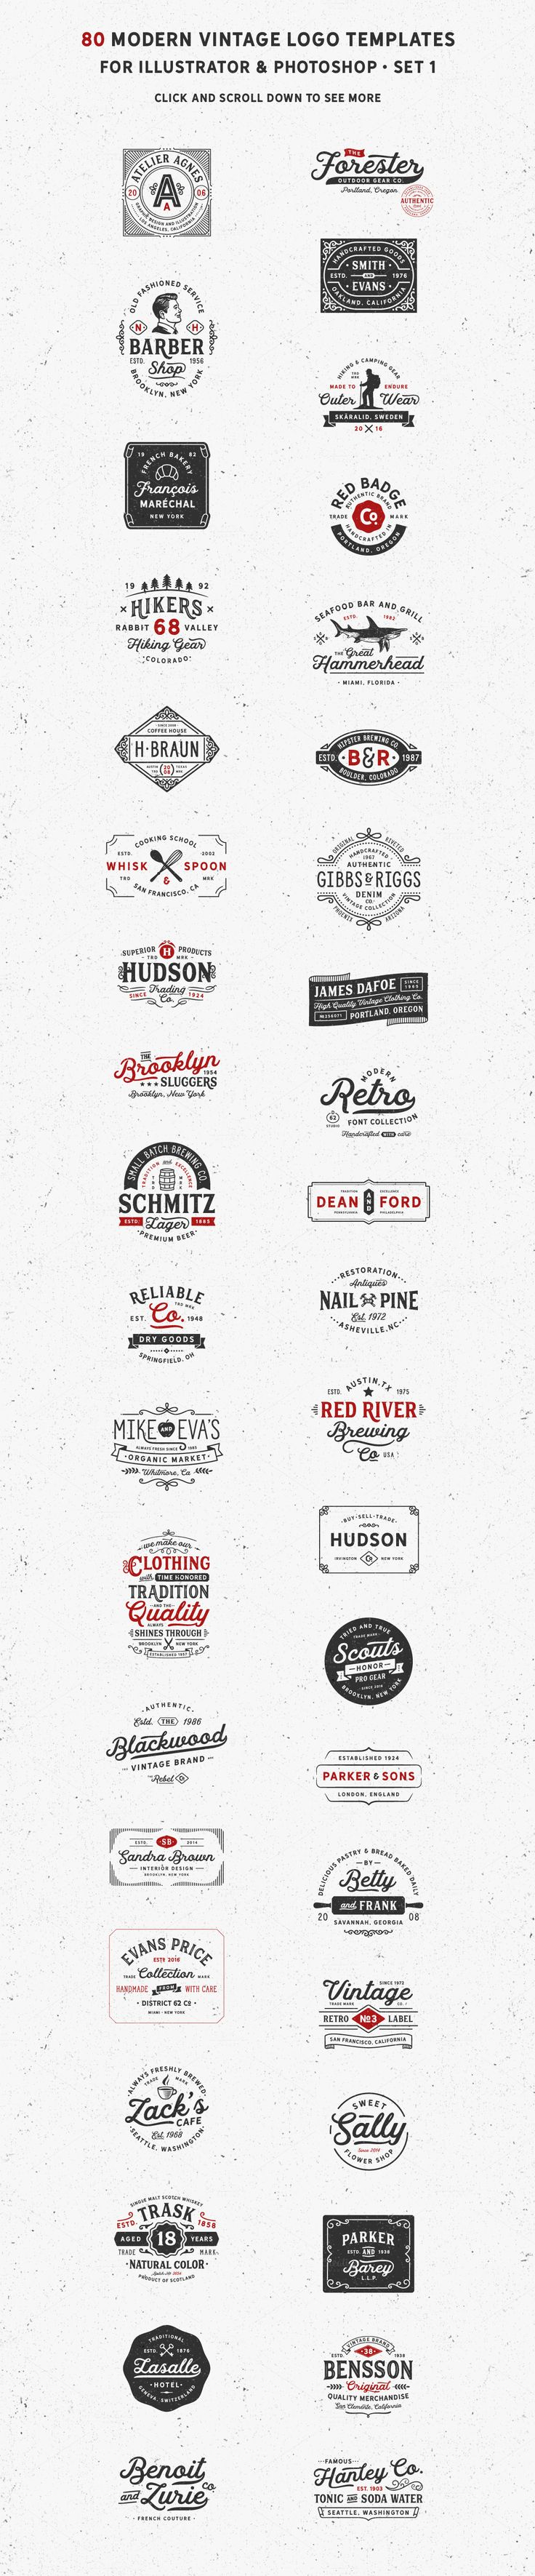 80 Modern Vintage Logos by DISTRICT 62 studio on @creativemarket